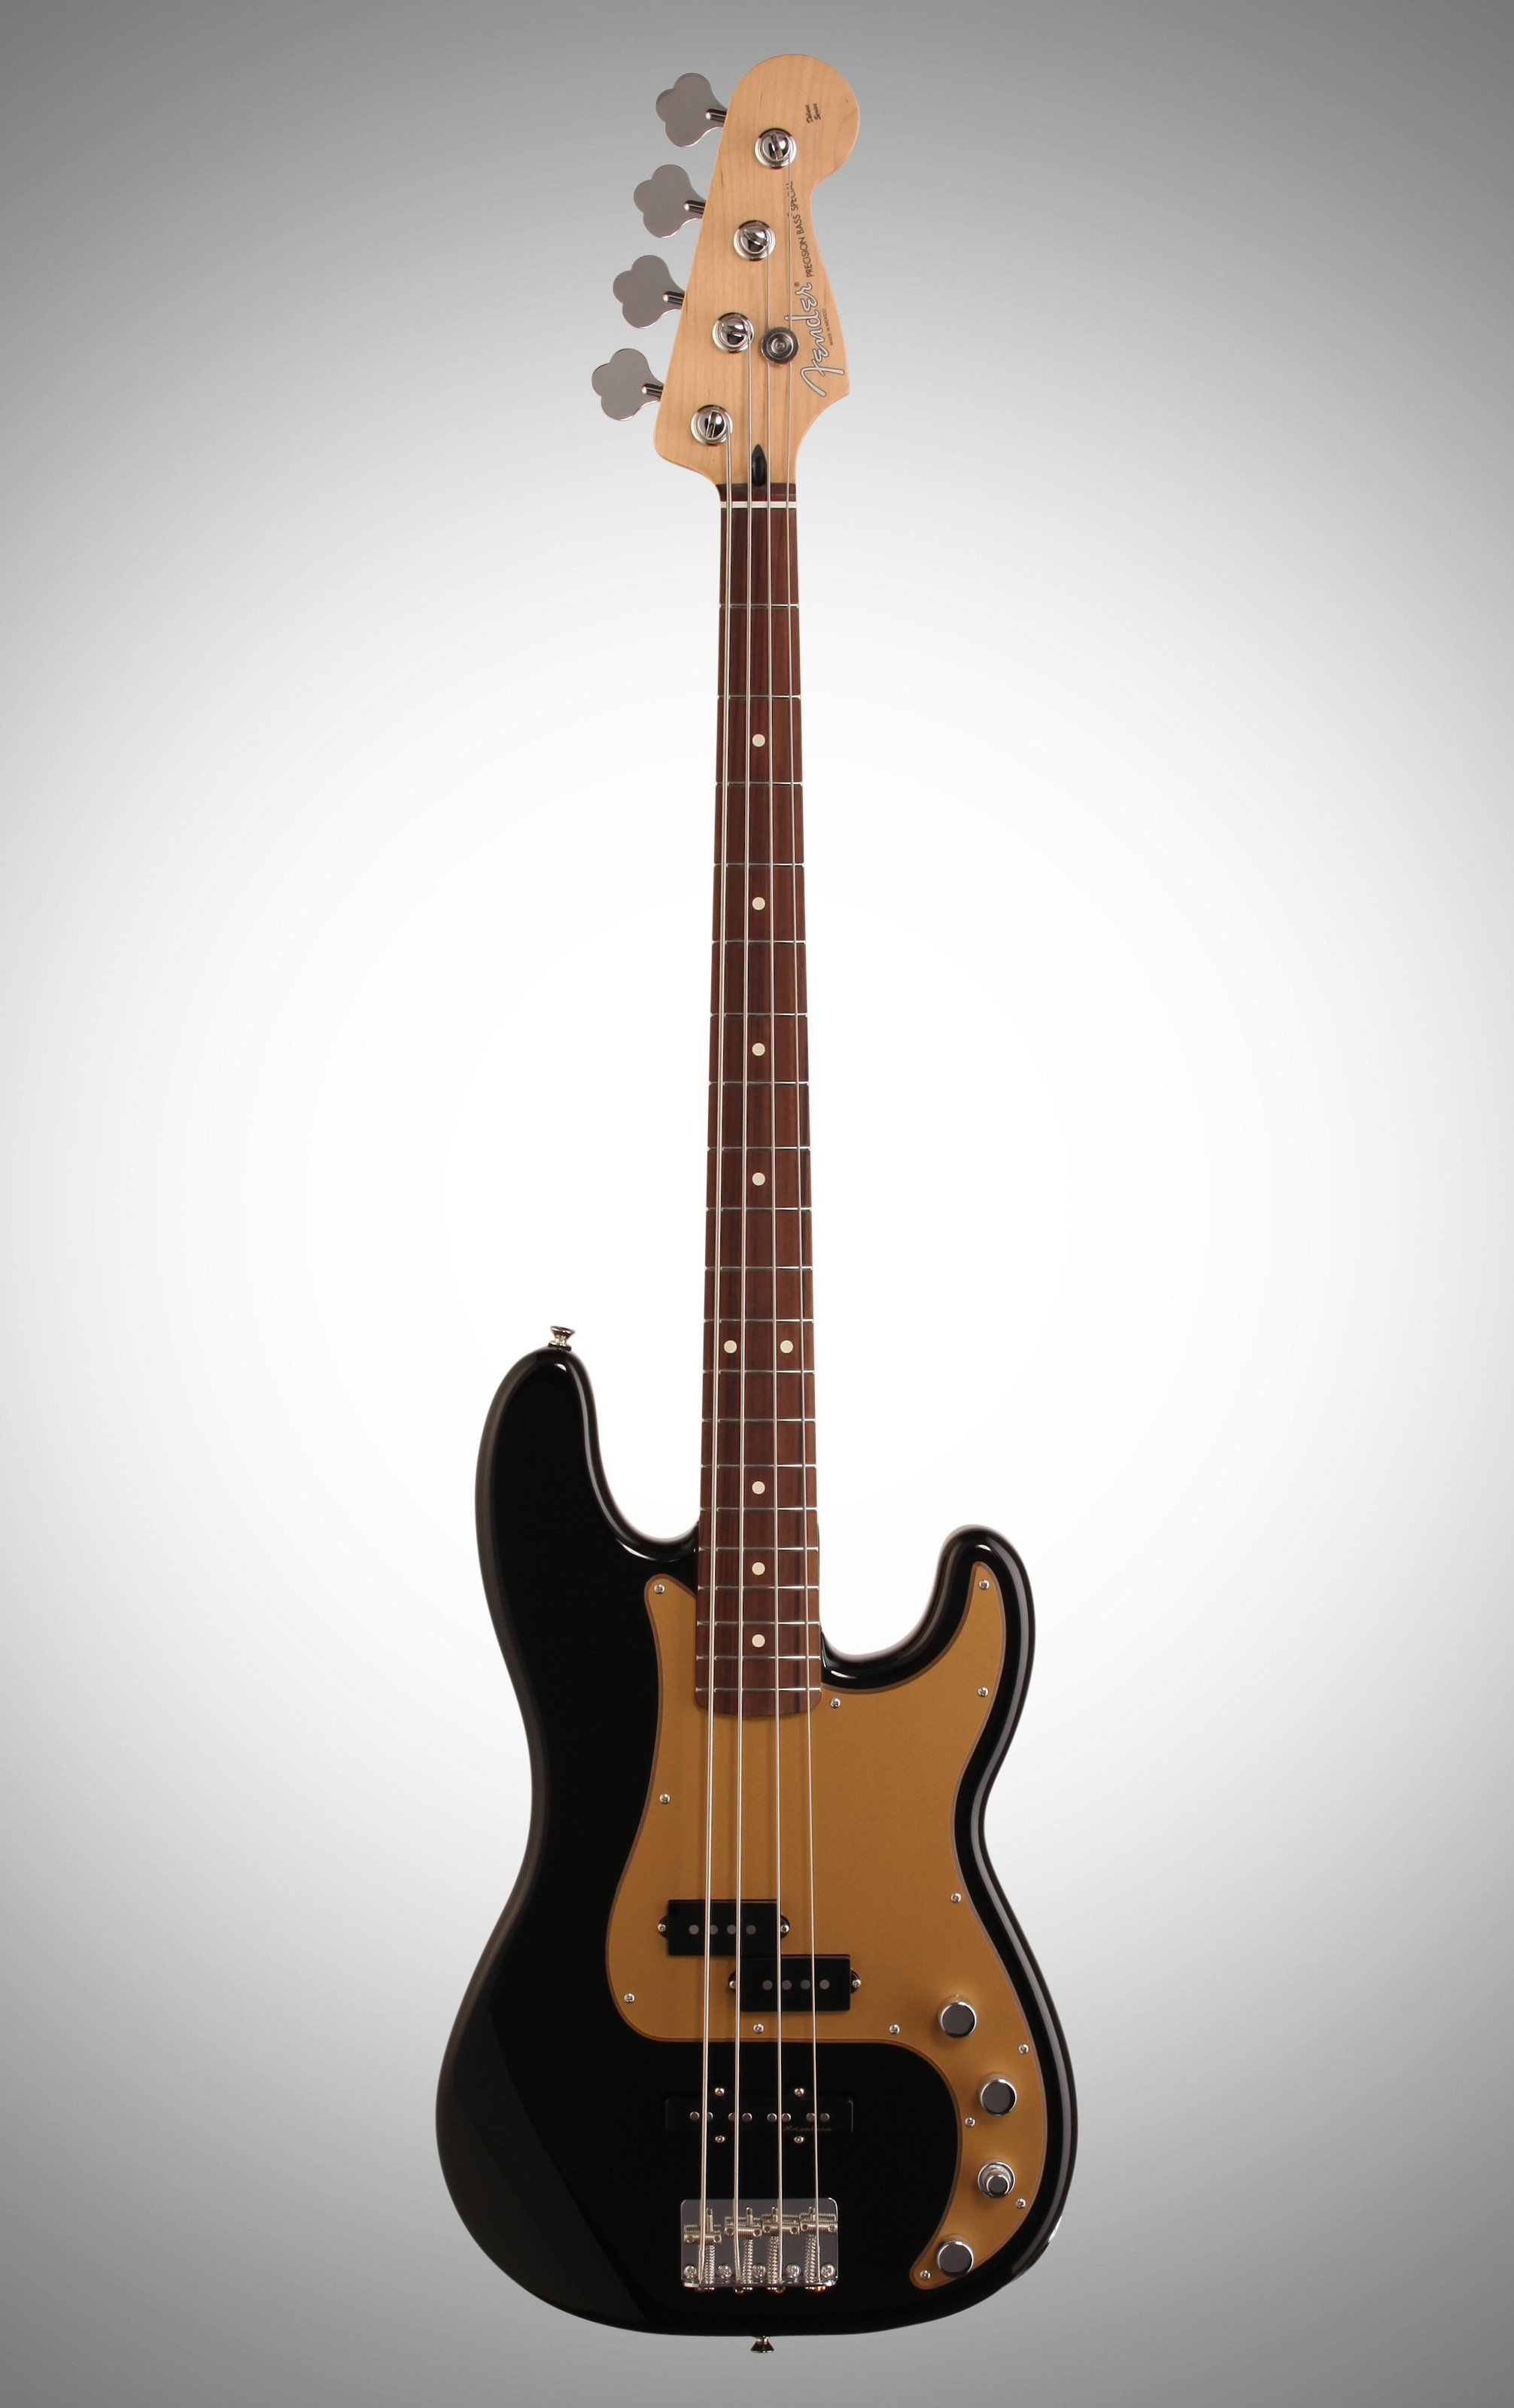 Fender Deluxe Rosewood P Bass Special Bass Guitar at zZounds Guitars Pinterest